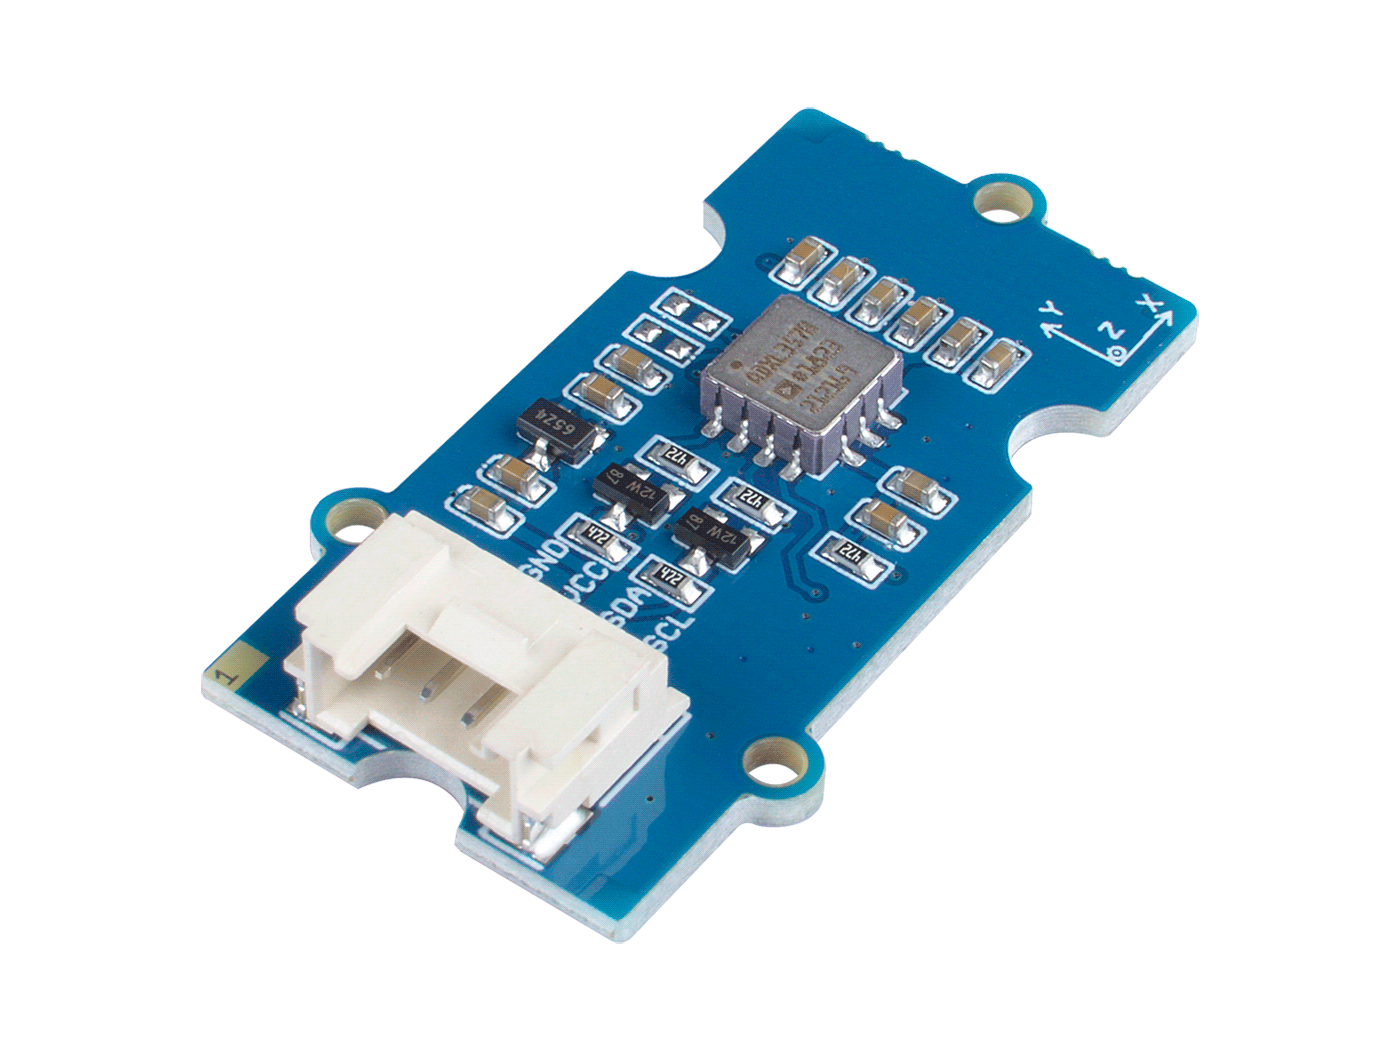 Grove - 3-Axis Digital Accelerometer 40g (ADXL357) - Seeed Wiki